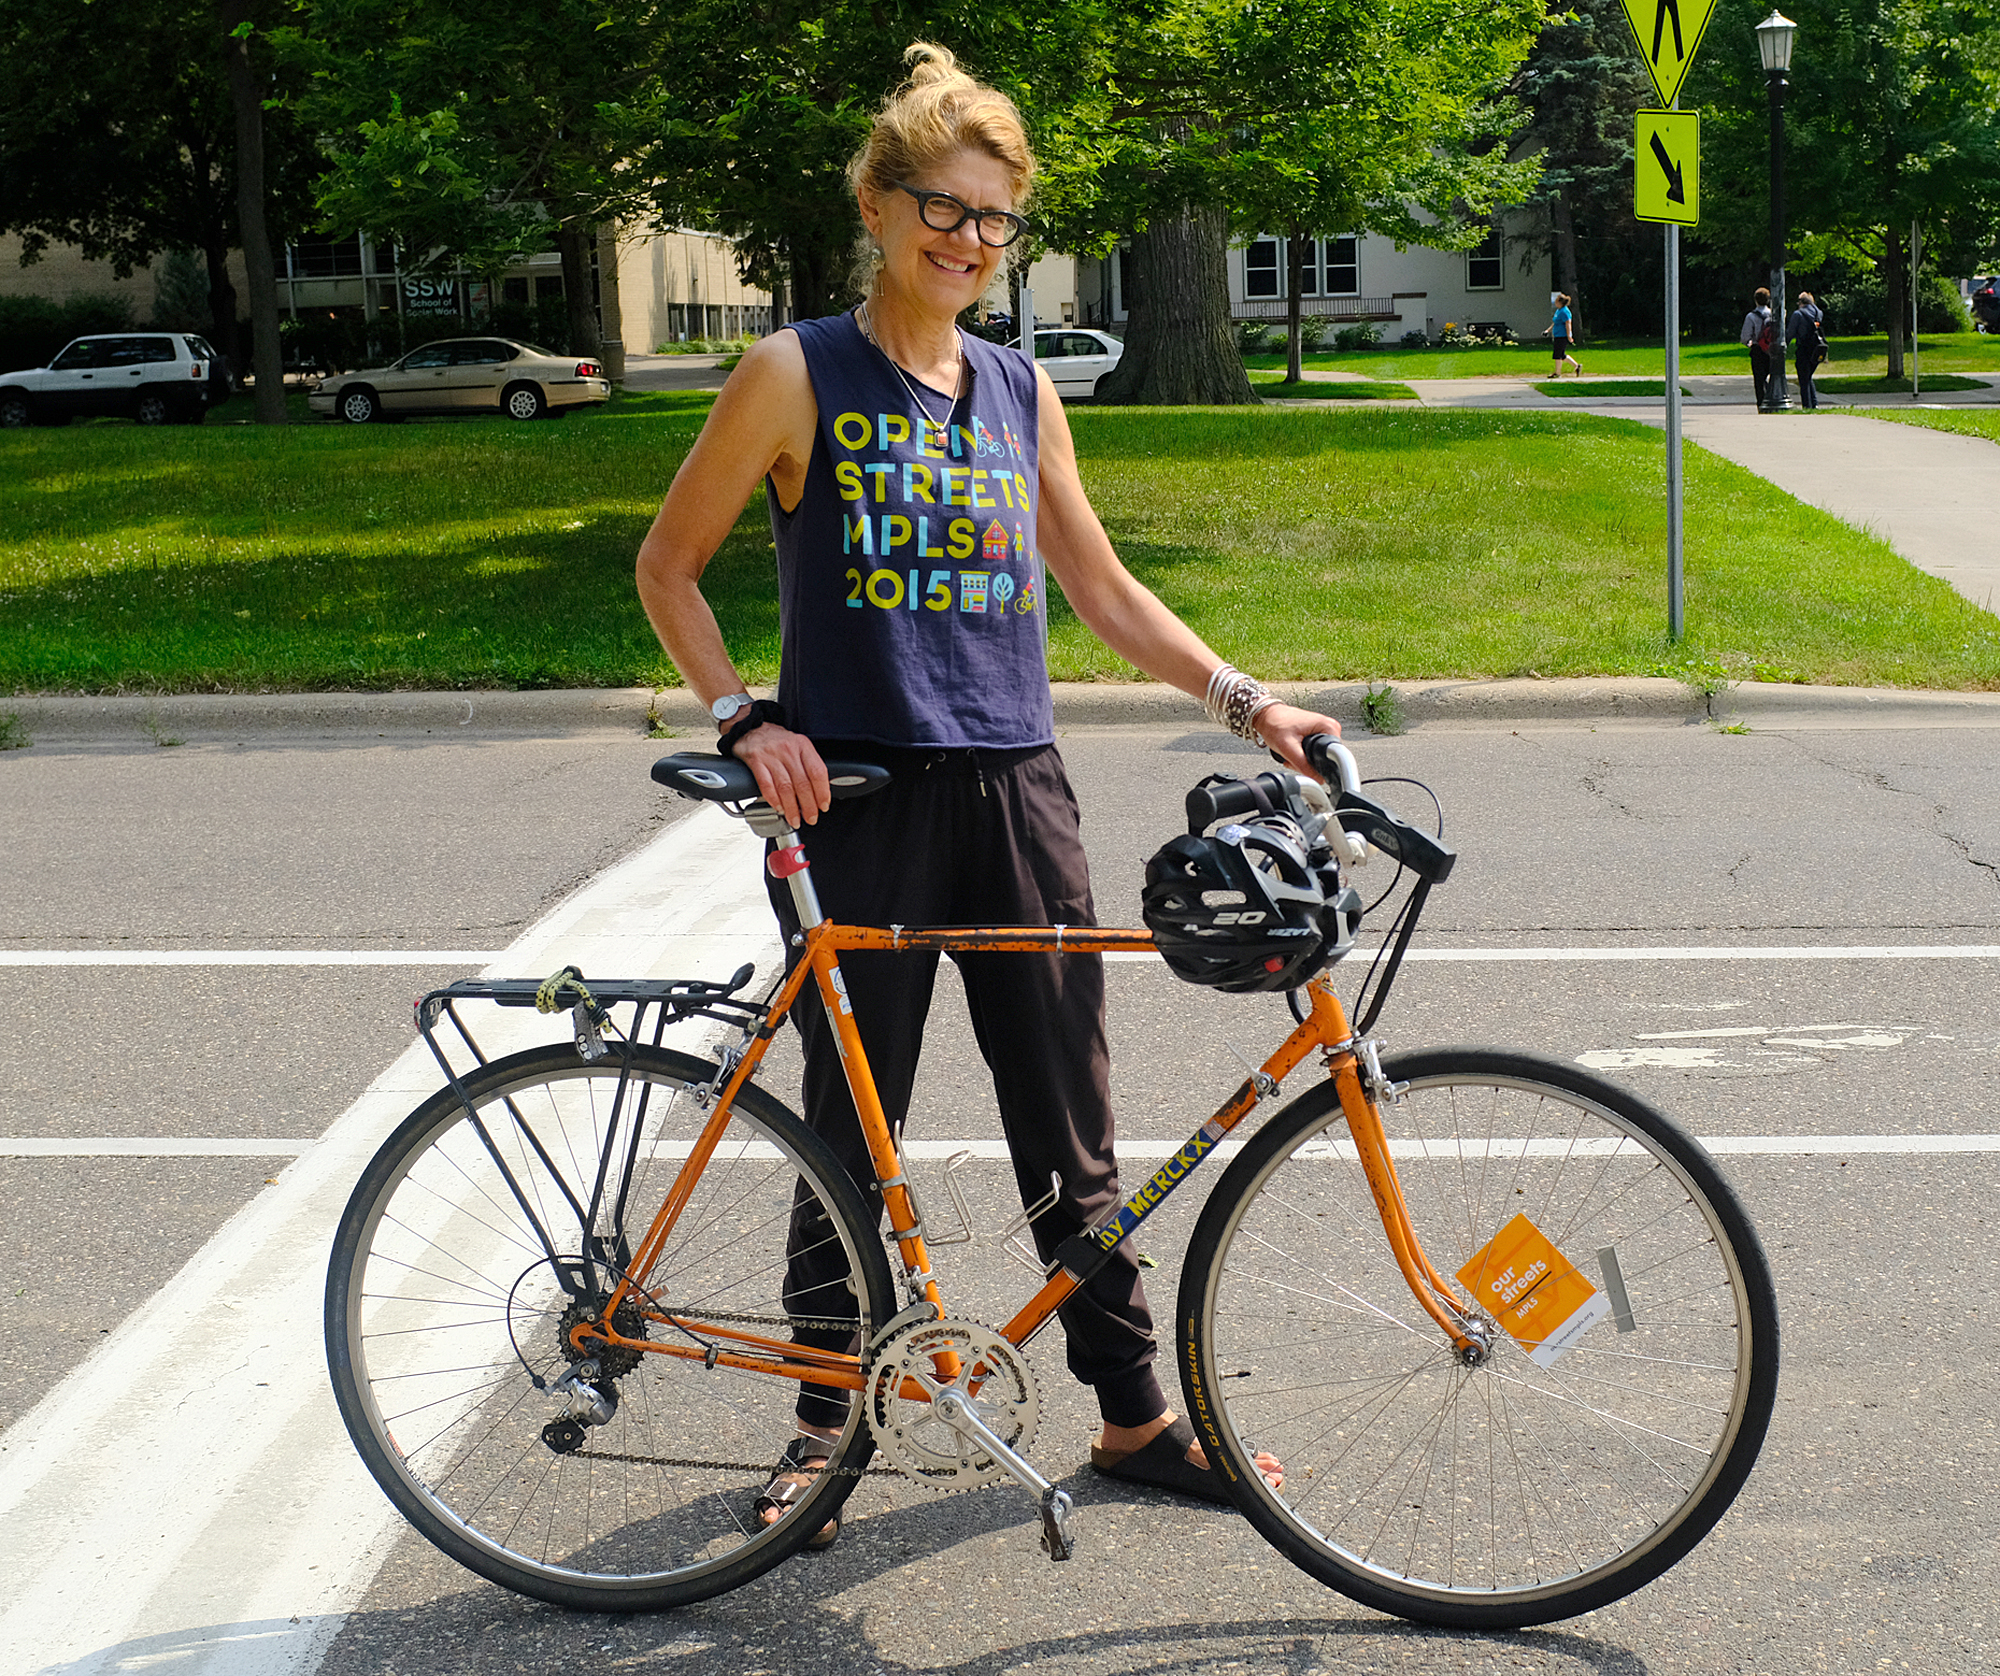 Anne Knauff, 63, is a veteran volunteer at Open Streets events.